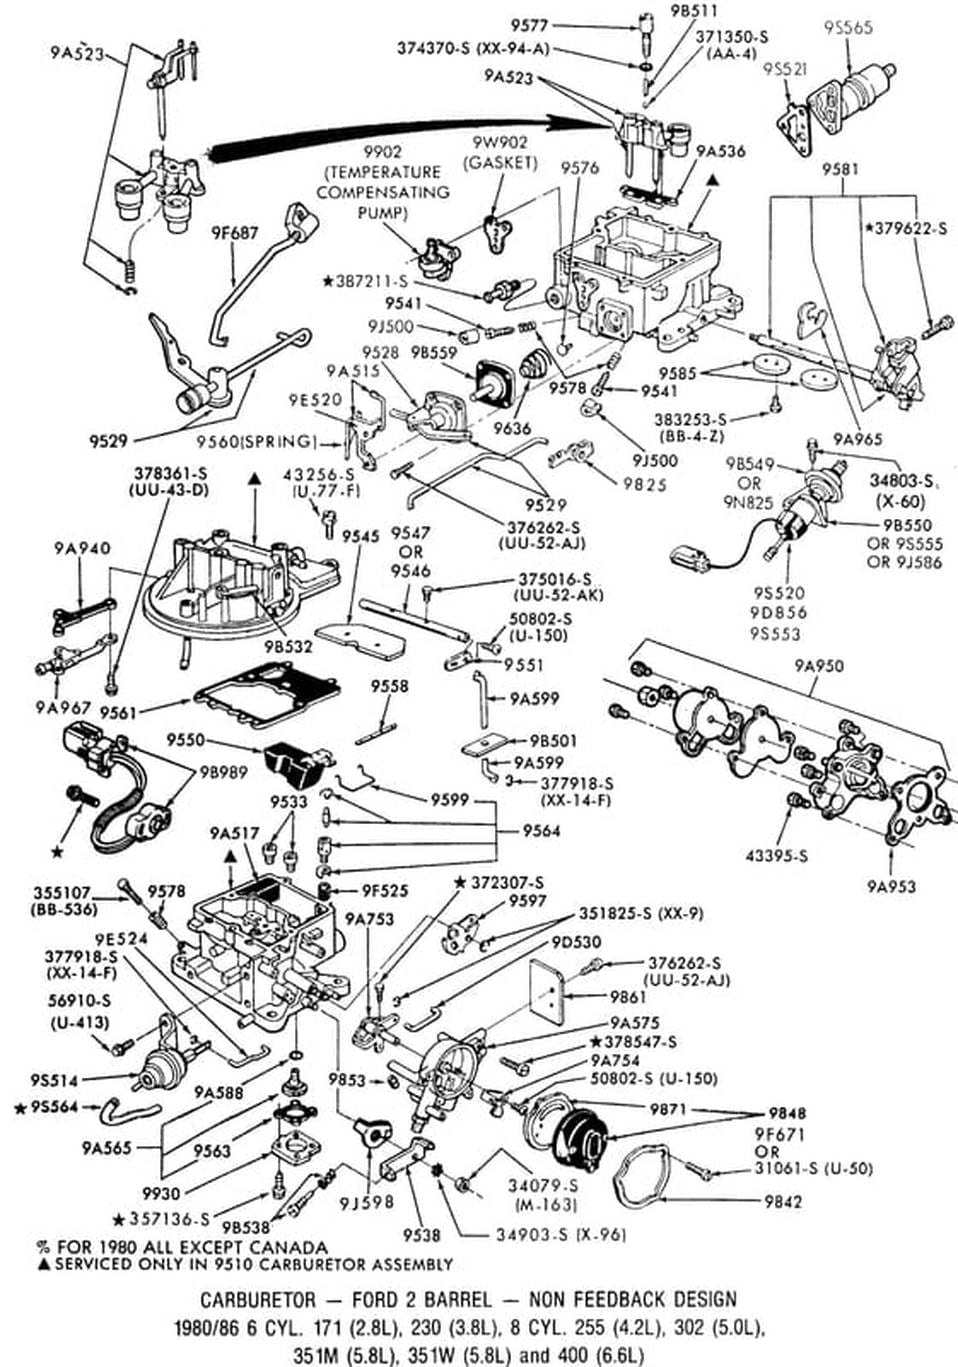 1983 Ford Ranger Carburetor Diagram